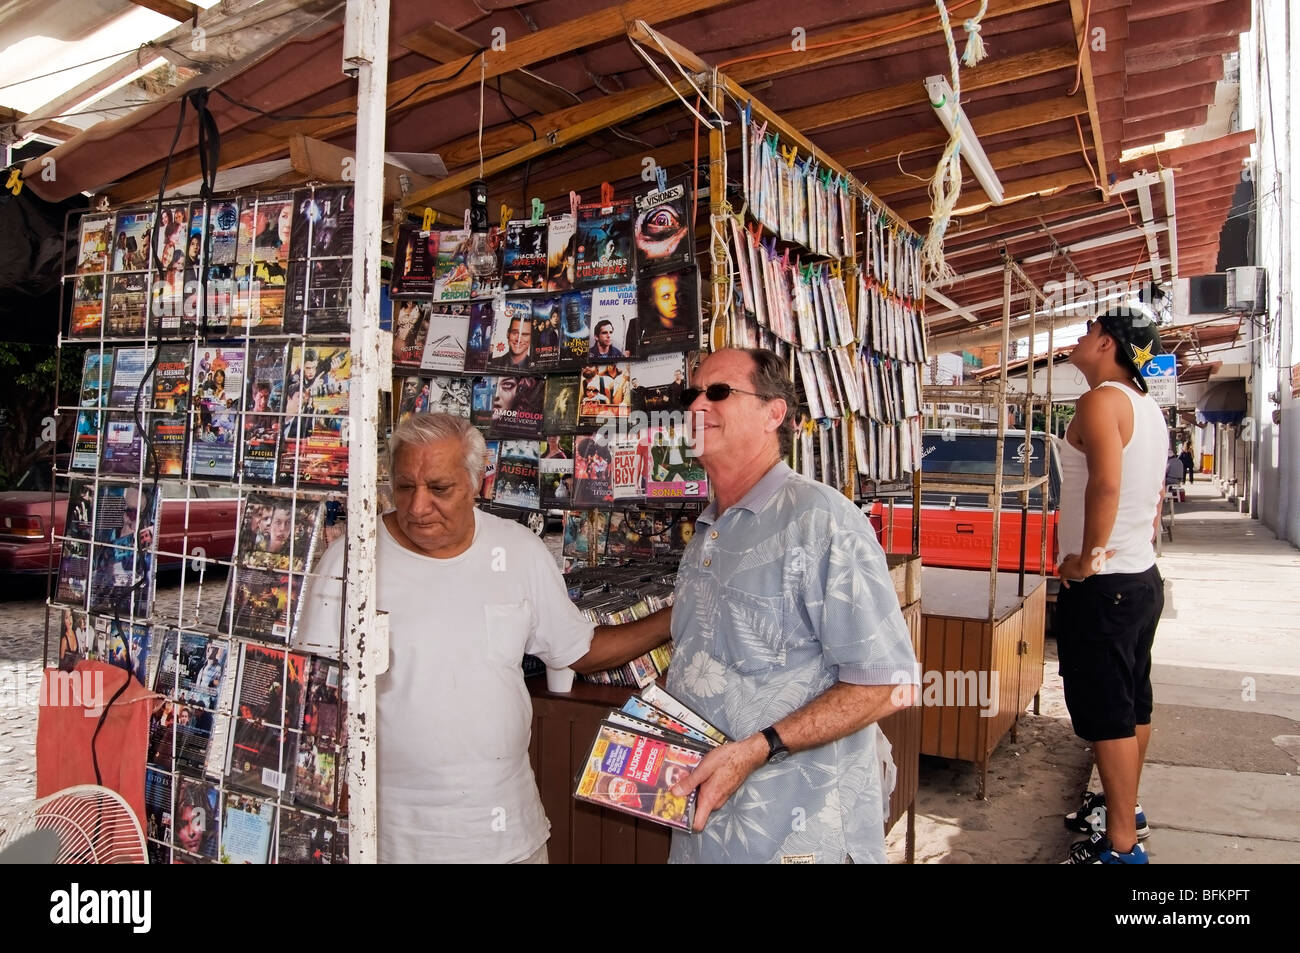 A street vendor selling pirated DVD movies shows a variety